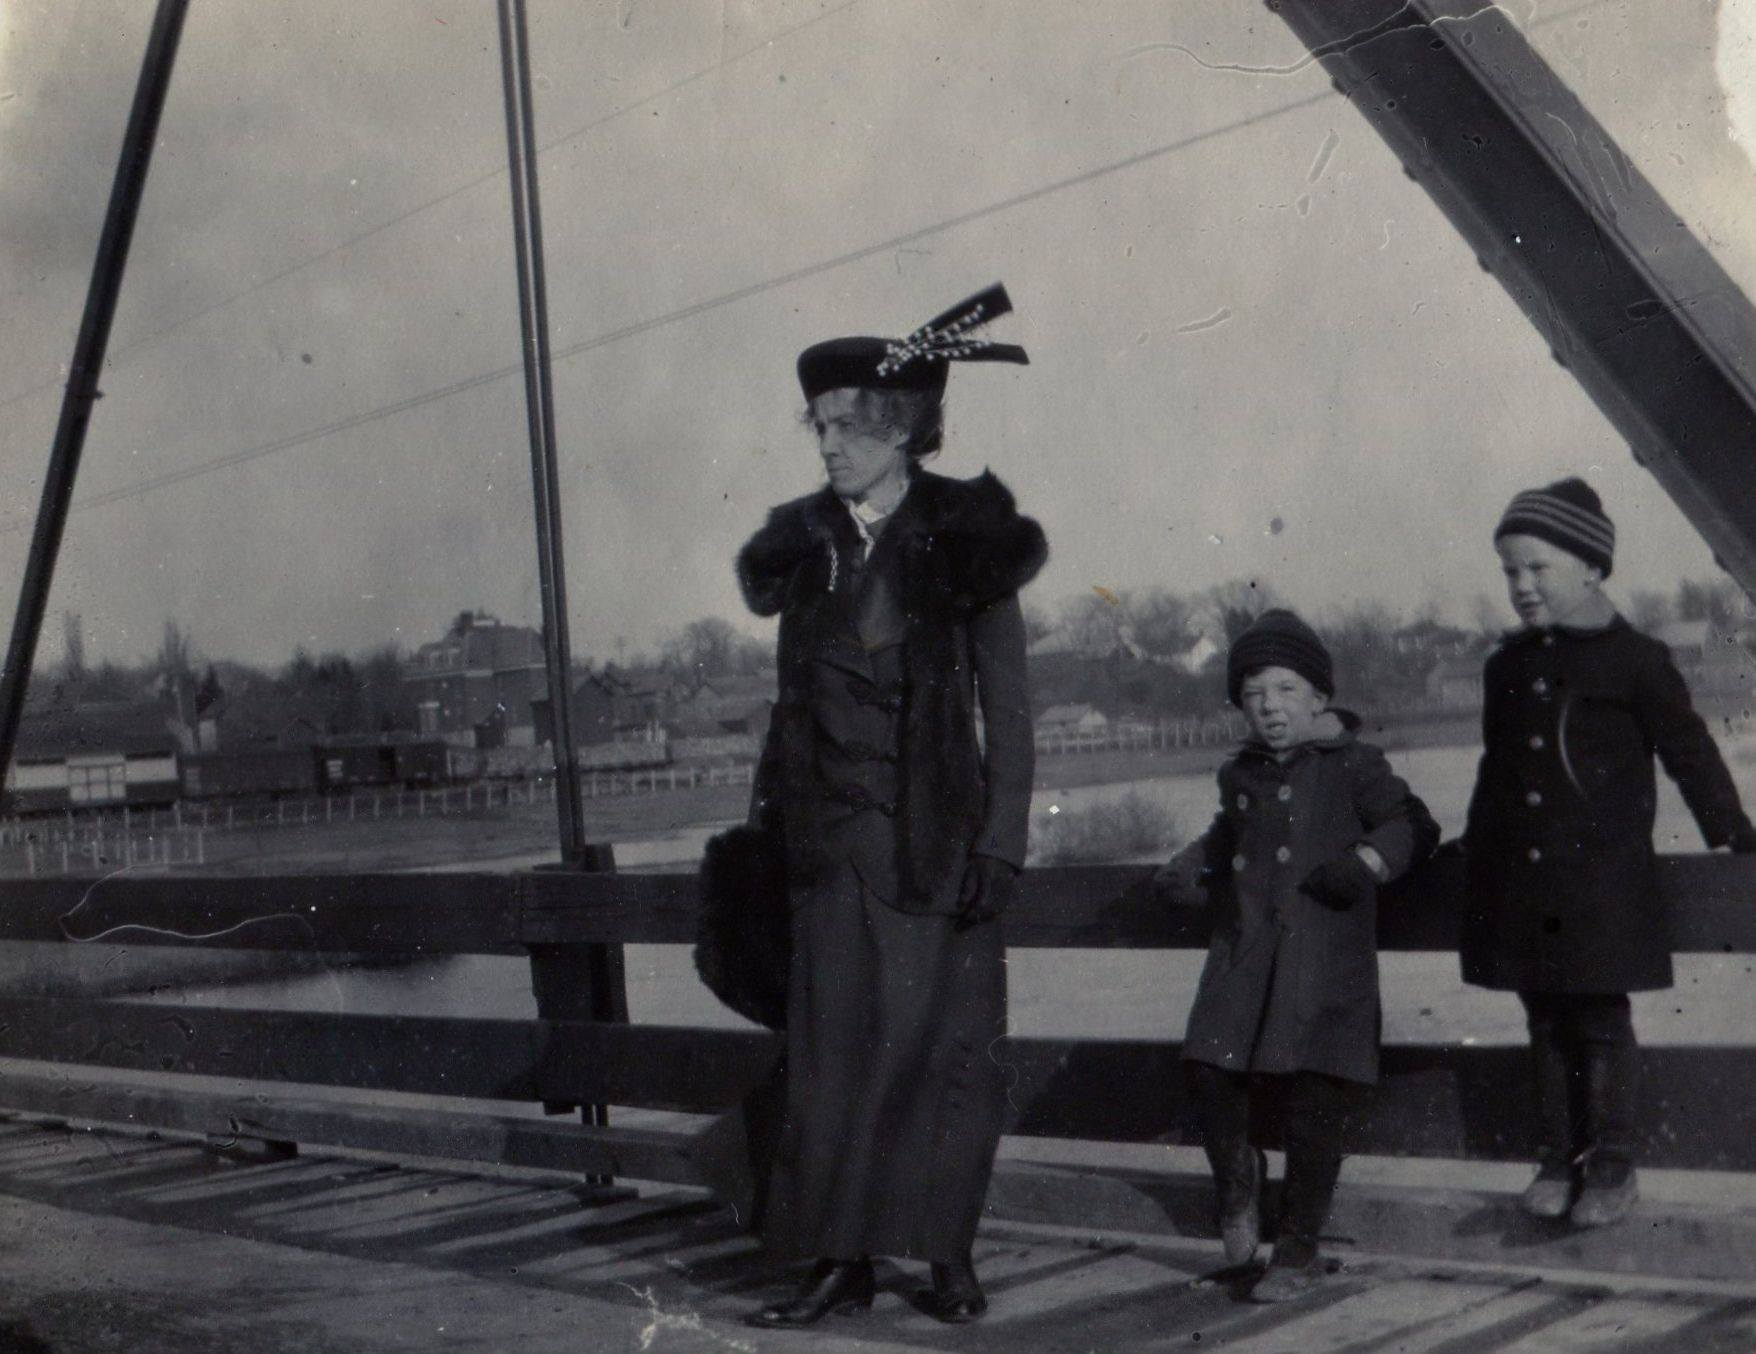 Catherine Brown Sanderson, Dougold and Magee on Crowe River Iron Bridge. Note train in the background.